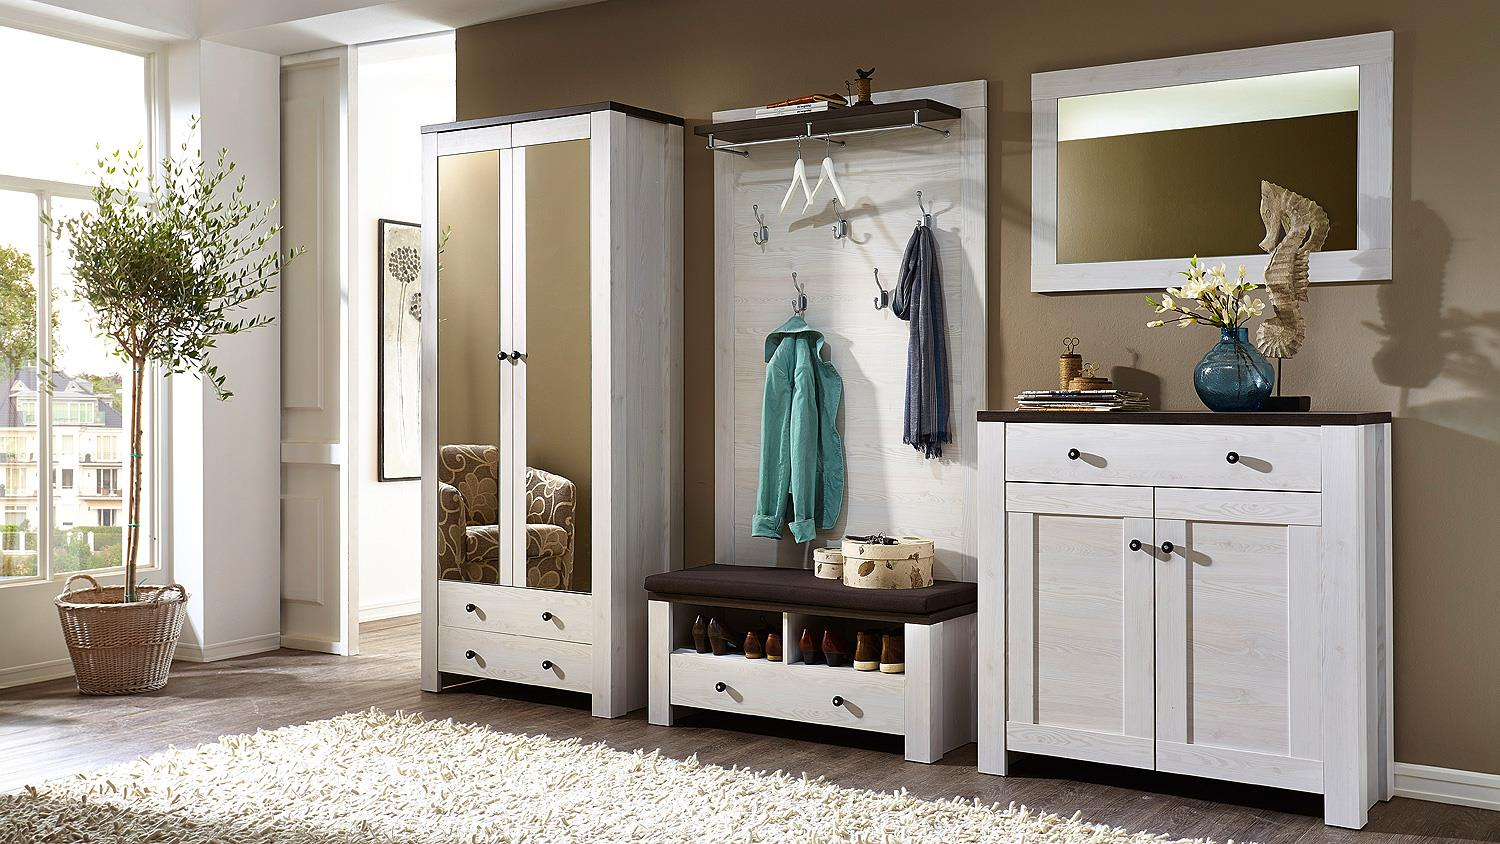 landscape garderobe my blog. Black Bedroom Furniture Sets. Home Design Ideas